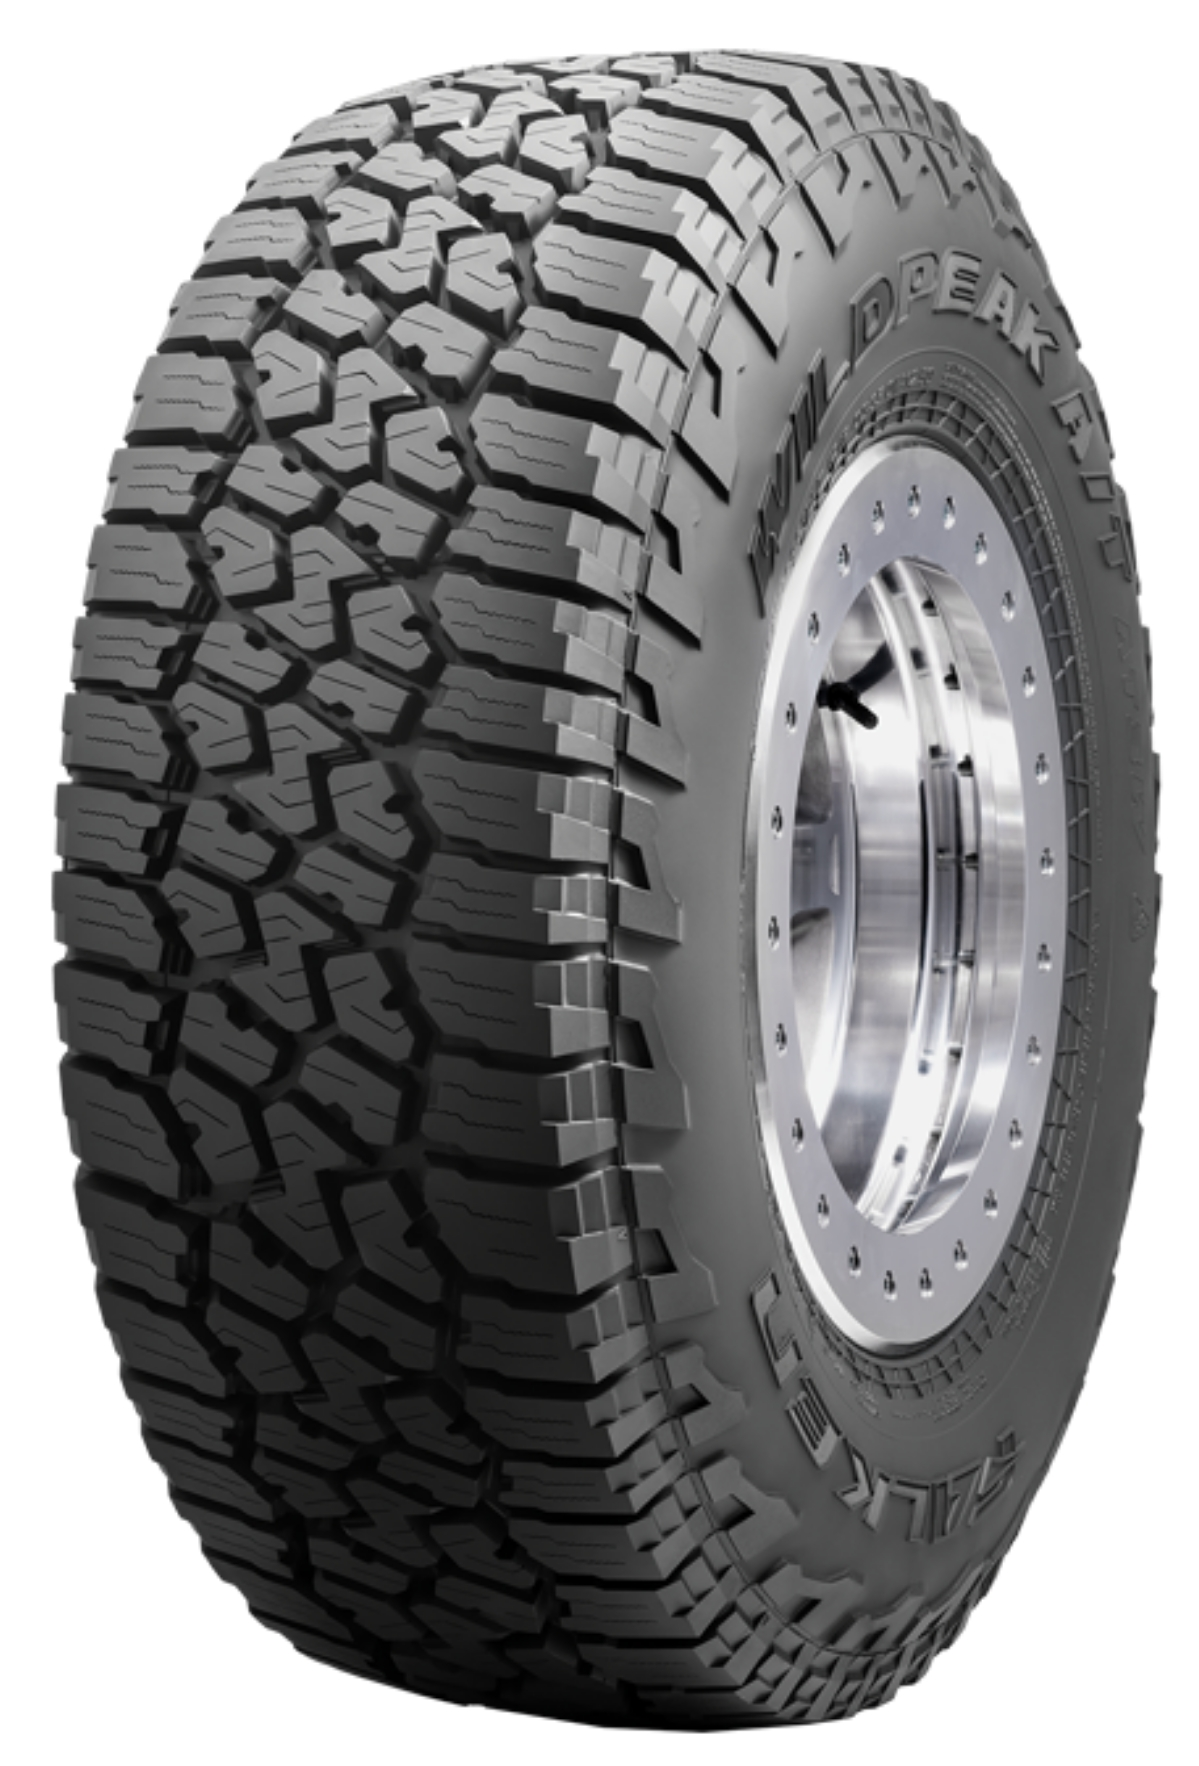 New All Weather Tires Cooper Xt4 Screenshot 20181127 111646 1543346334942 Jpg